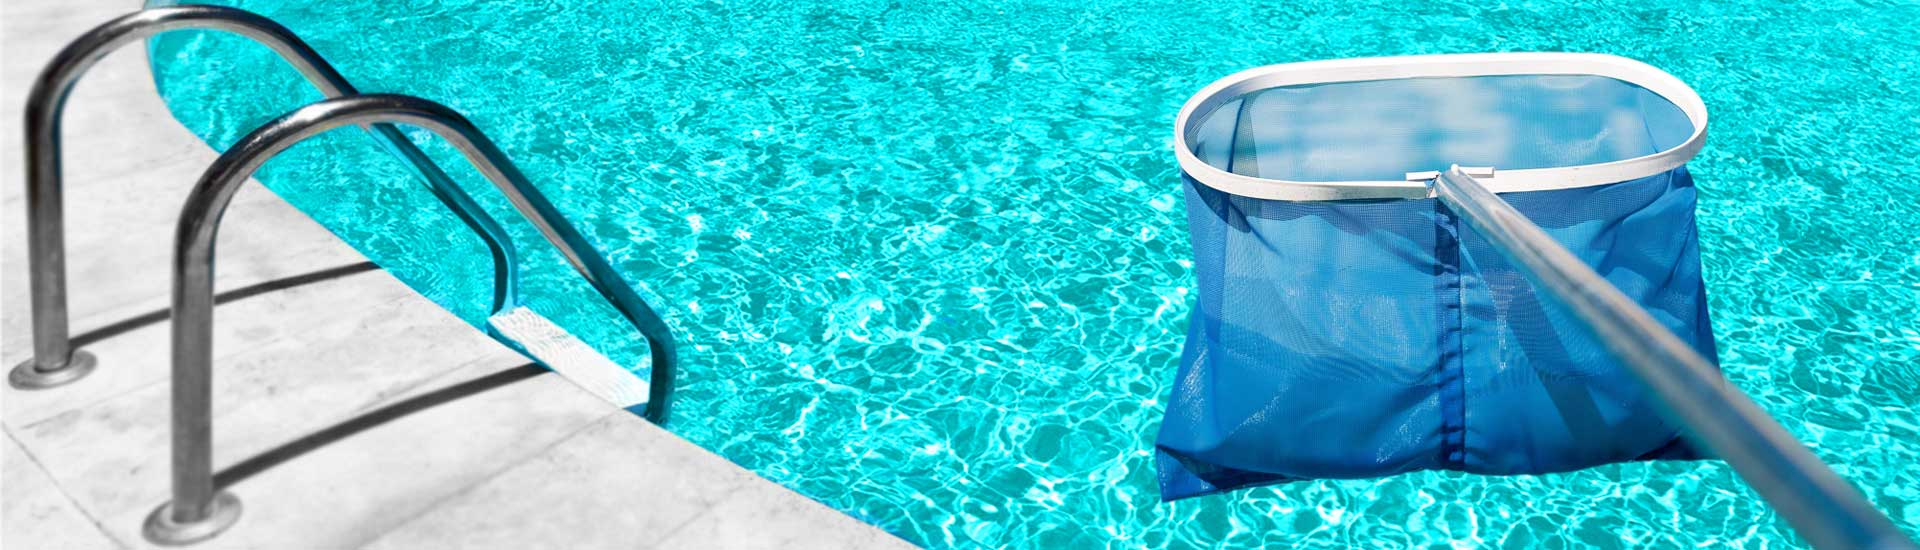 Make Swimming Pool maintenance your New Year's Resolution